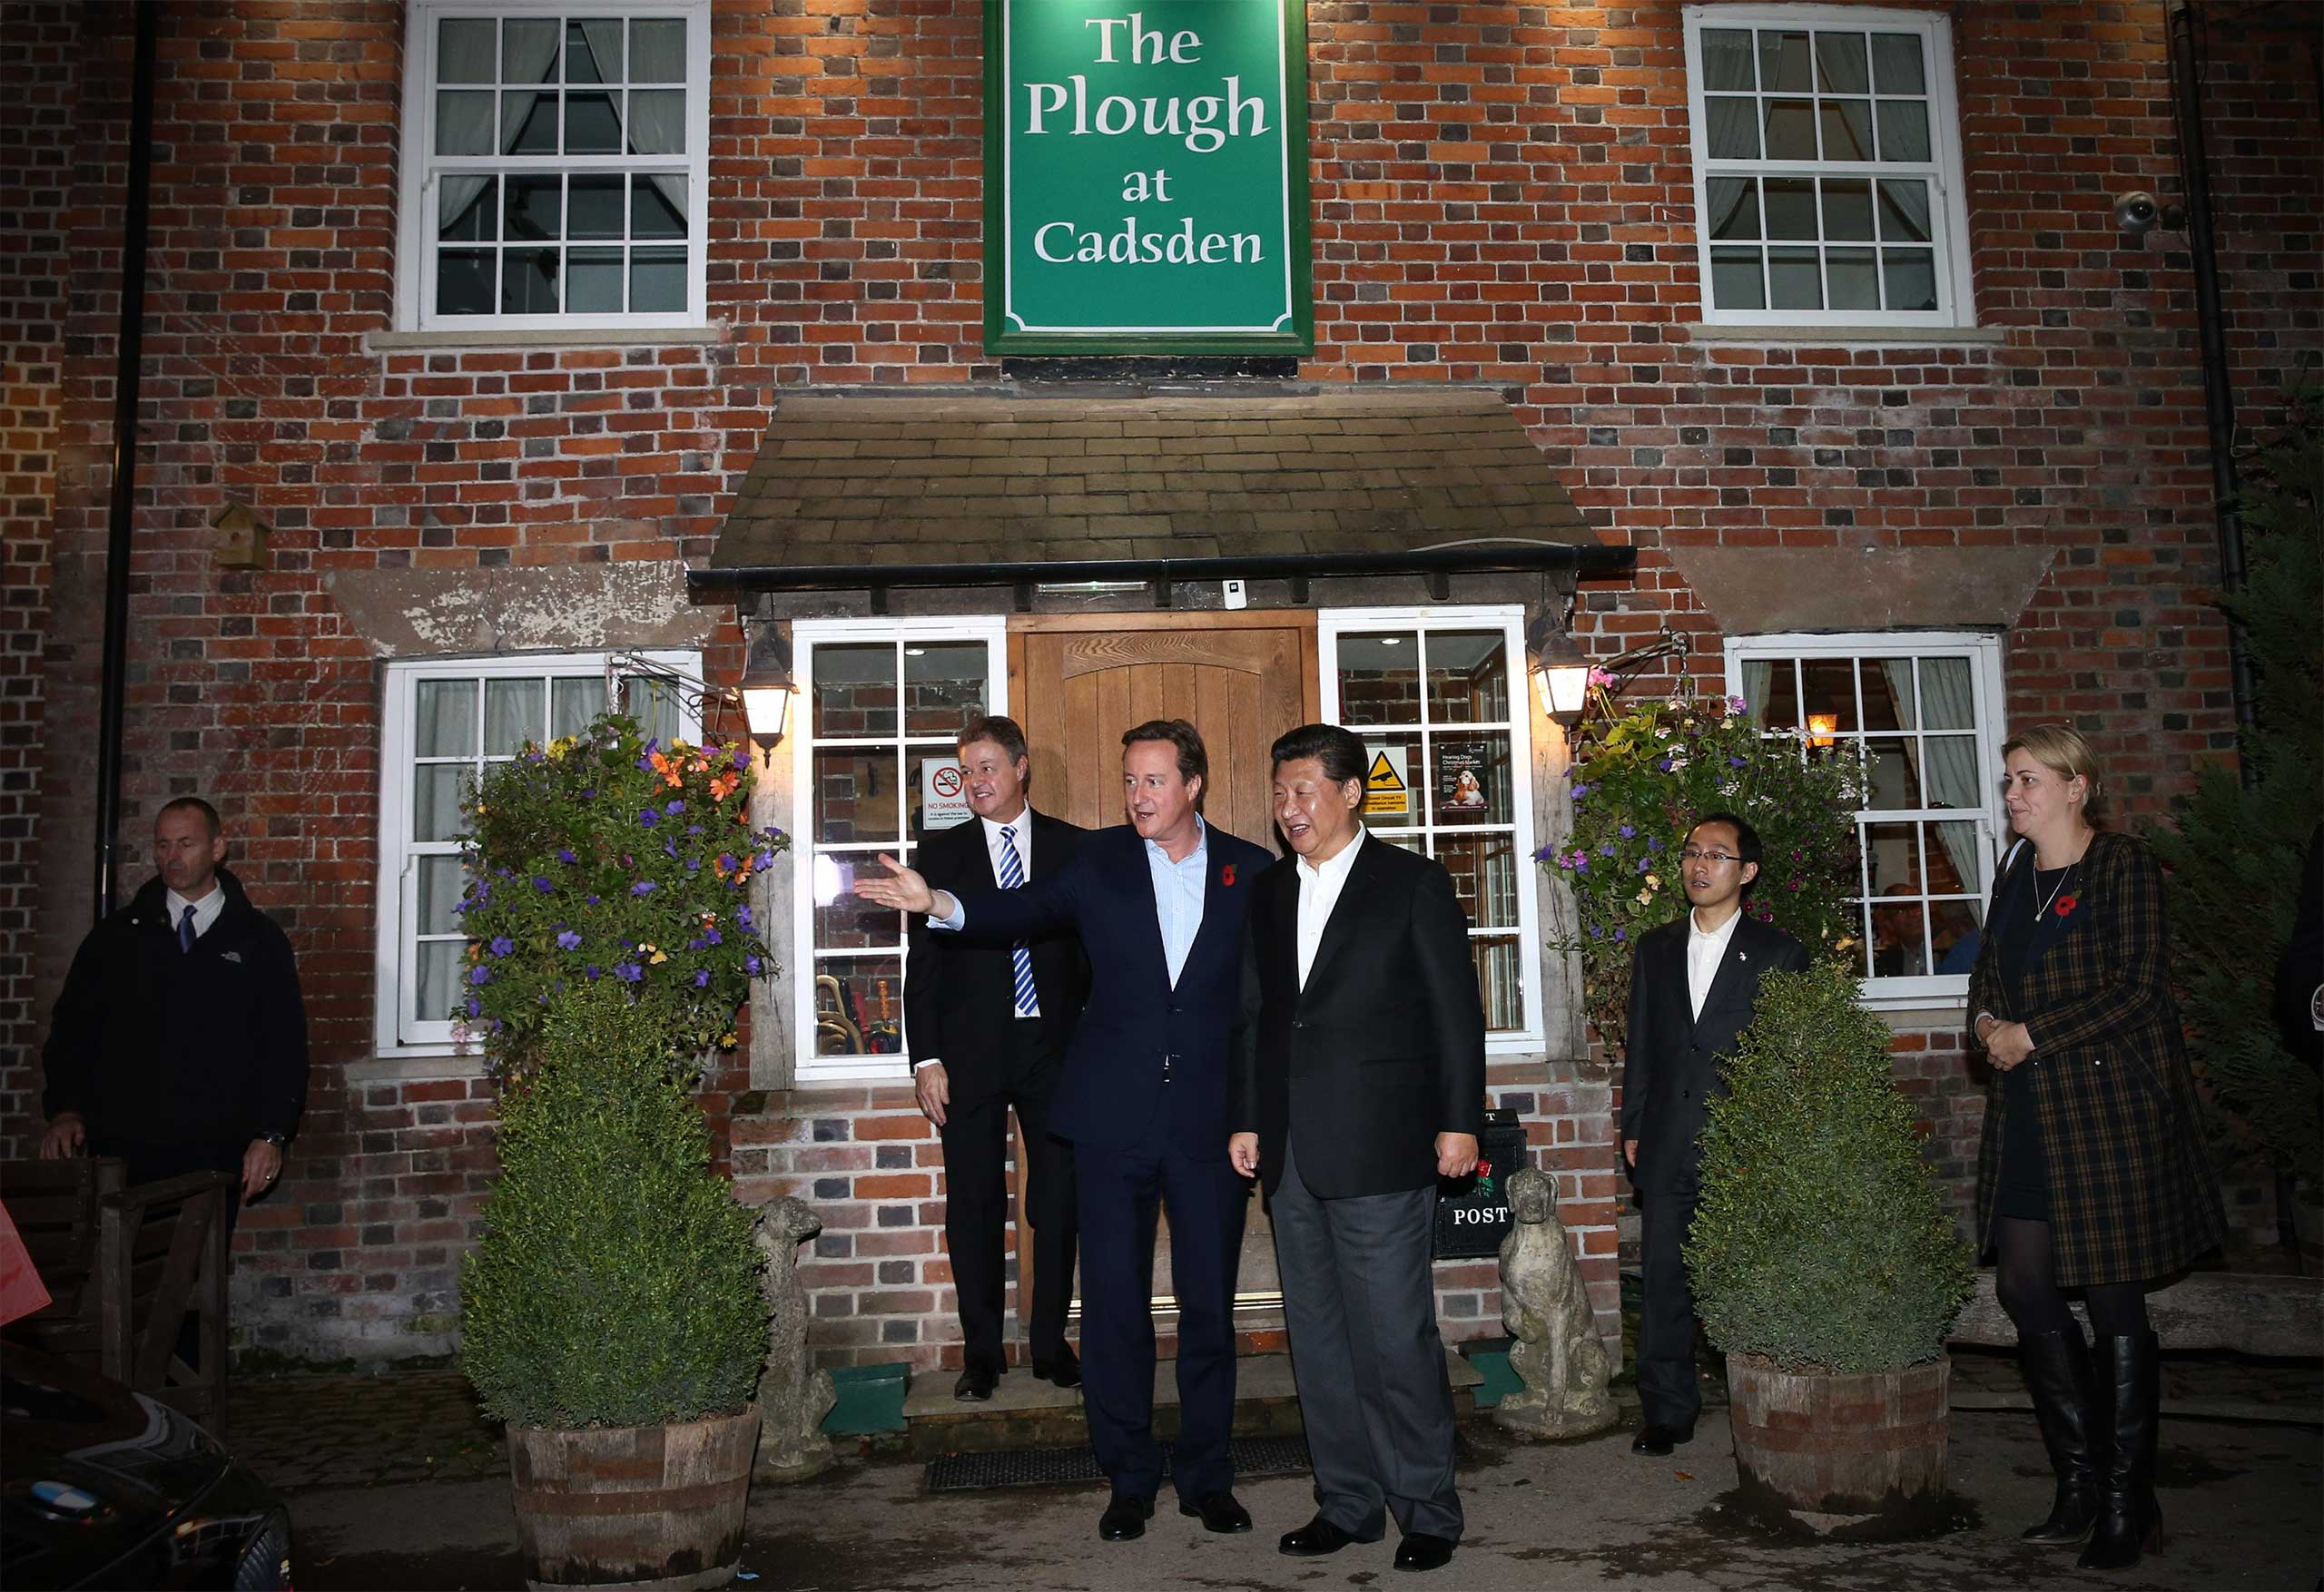 Prime Minister David Cameron leaves The Plough pub with China's president Xi Jinping in Princes Risborough, England, on Oct. 22, 2015